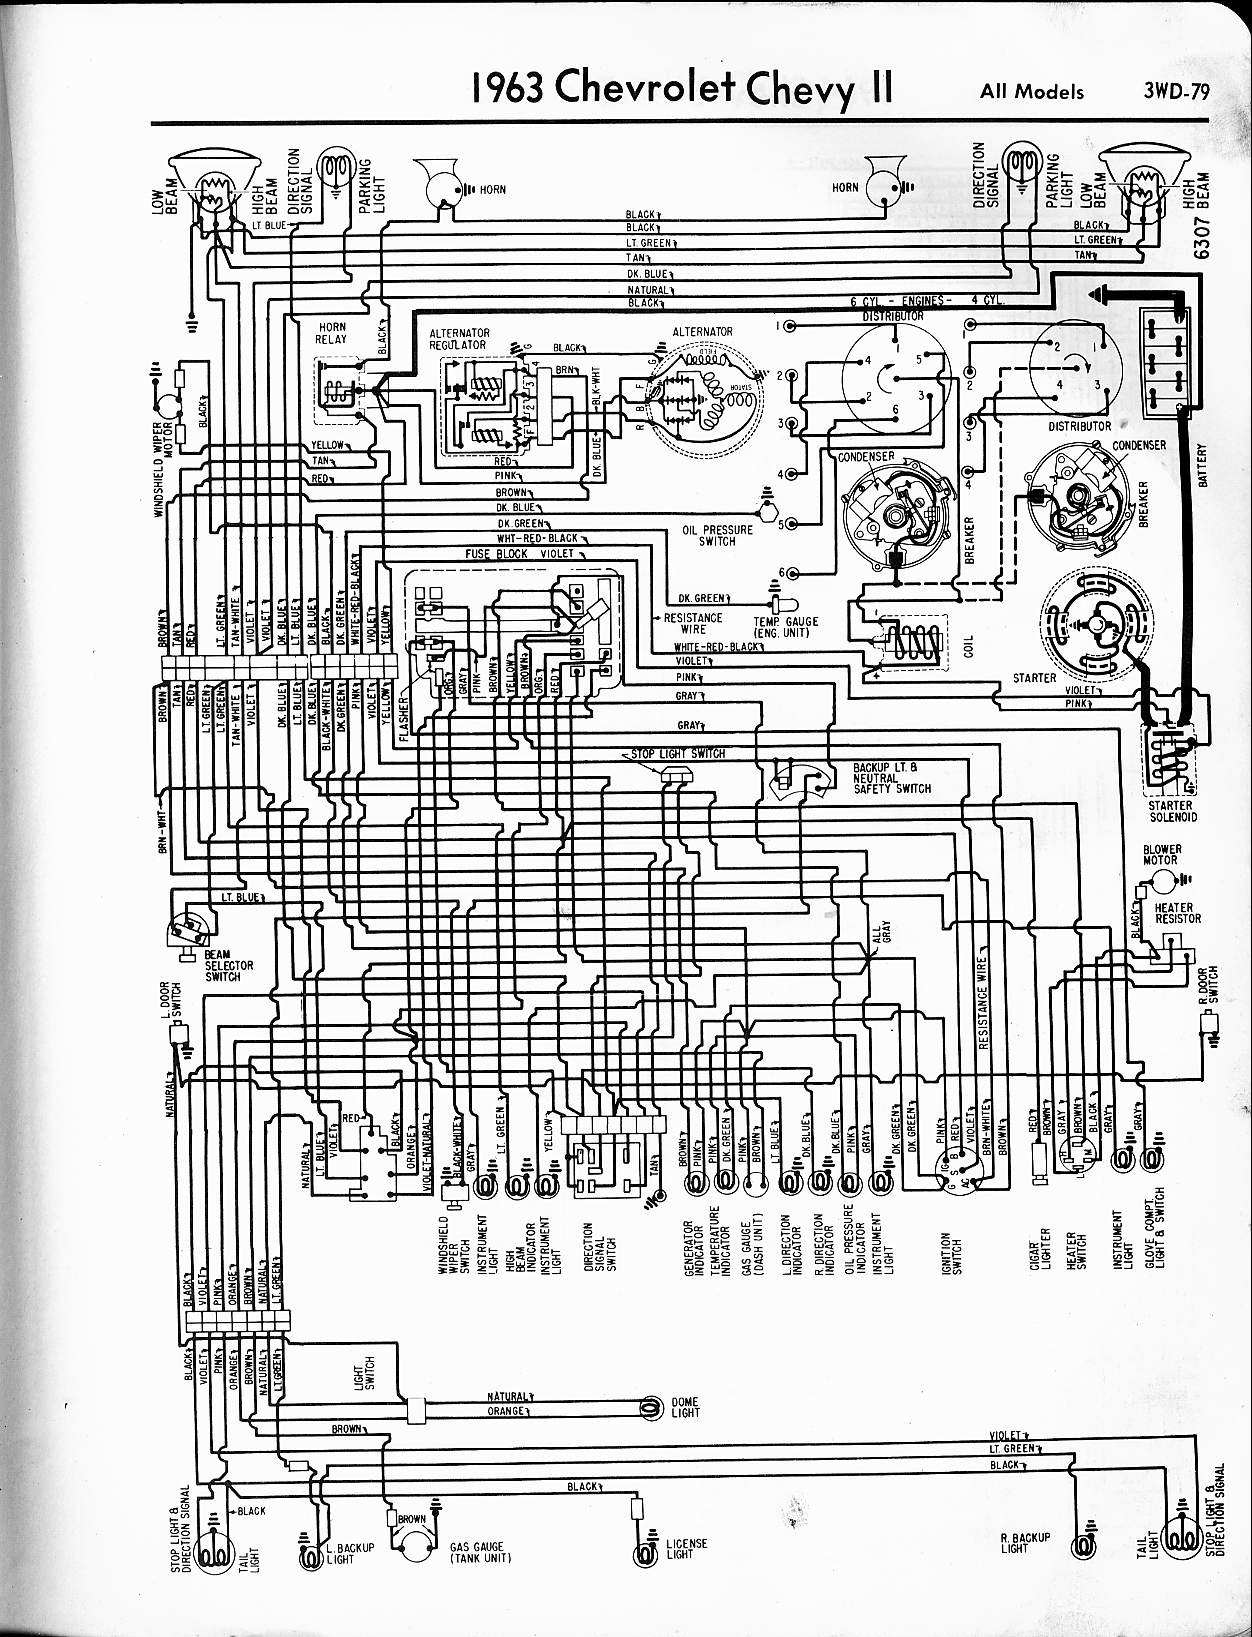 Chevrolet C10 Wiring Diagram Trusted 87 Chevy Wire Diagrams 1963 Schematics Engine 57 65